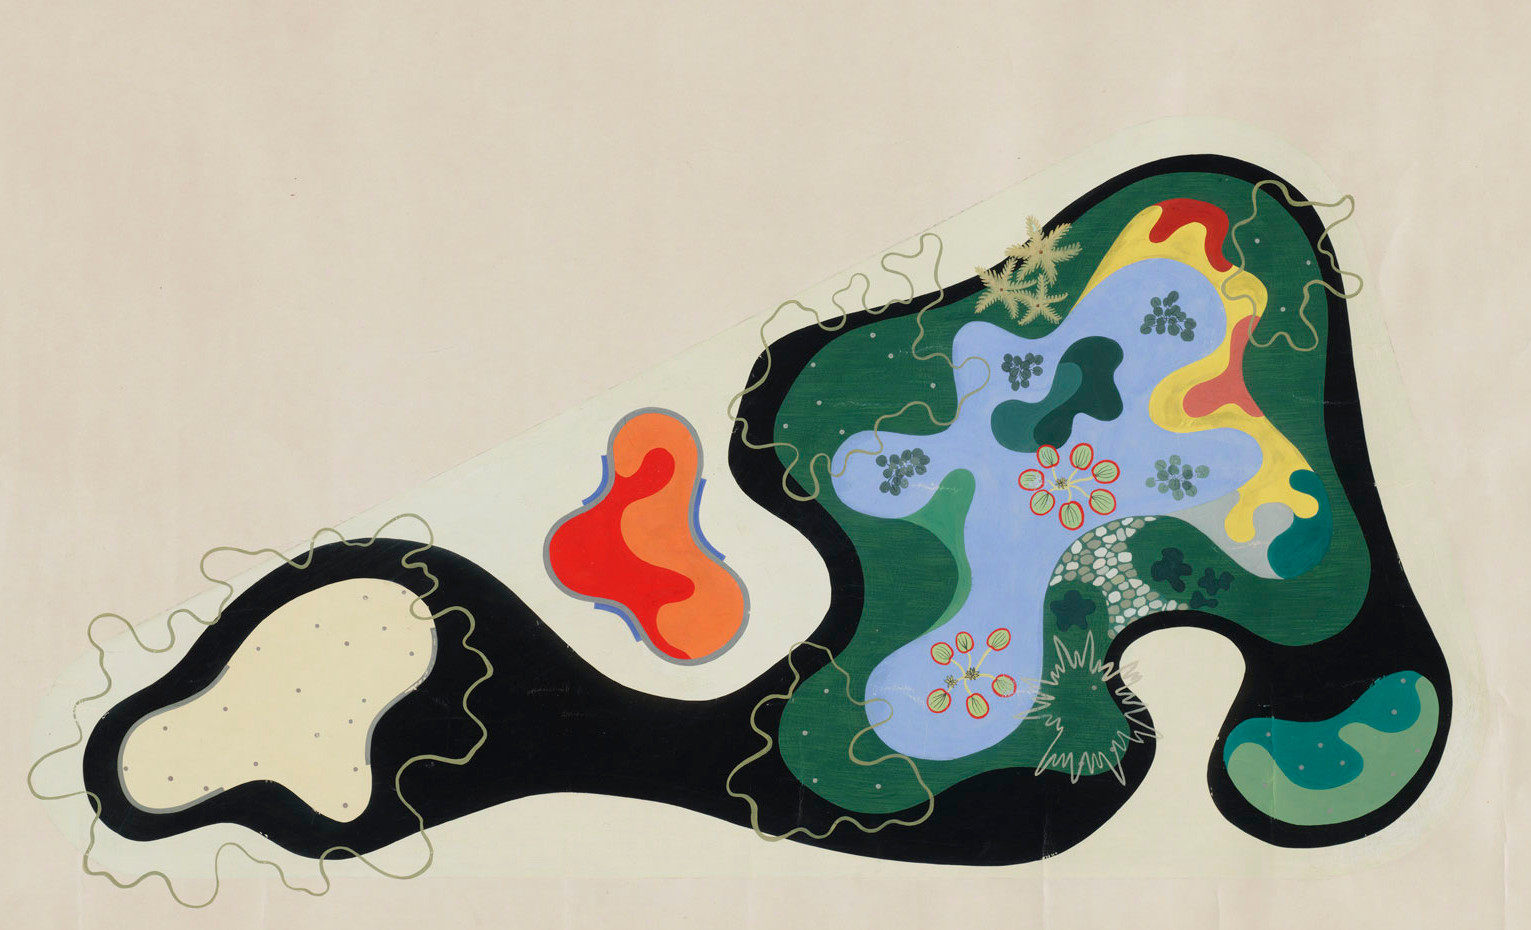 Roberto Burle Marx. Garden Design Saenz Peña Square, Rio de Janeiro, Brazil, Plan, 1948. Gouache on paper, 24 3/8 × 40″ (61.9 × 101.6 cm). The Museum of Modern Art, New York. Gift of Philip L. Goodwin